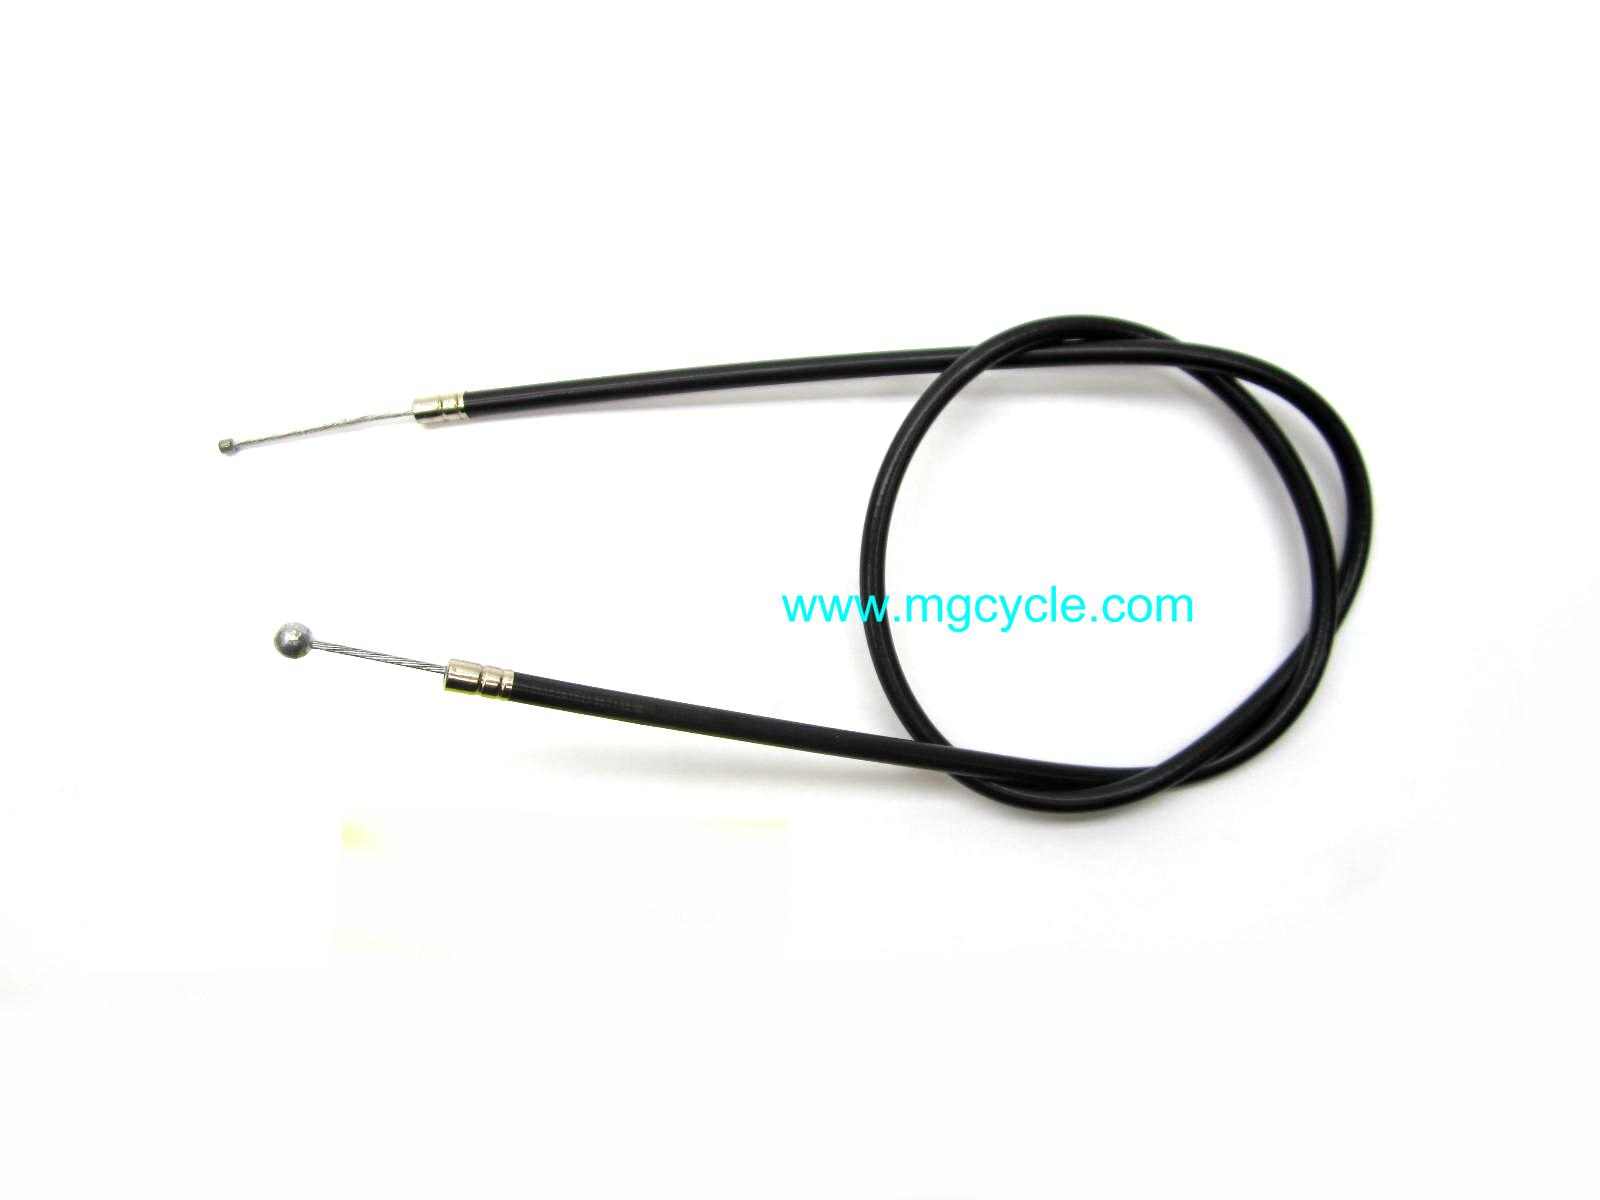 throttle cables : MG Cycle, Moto Guzzi Parts and